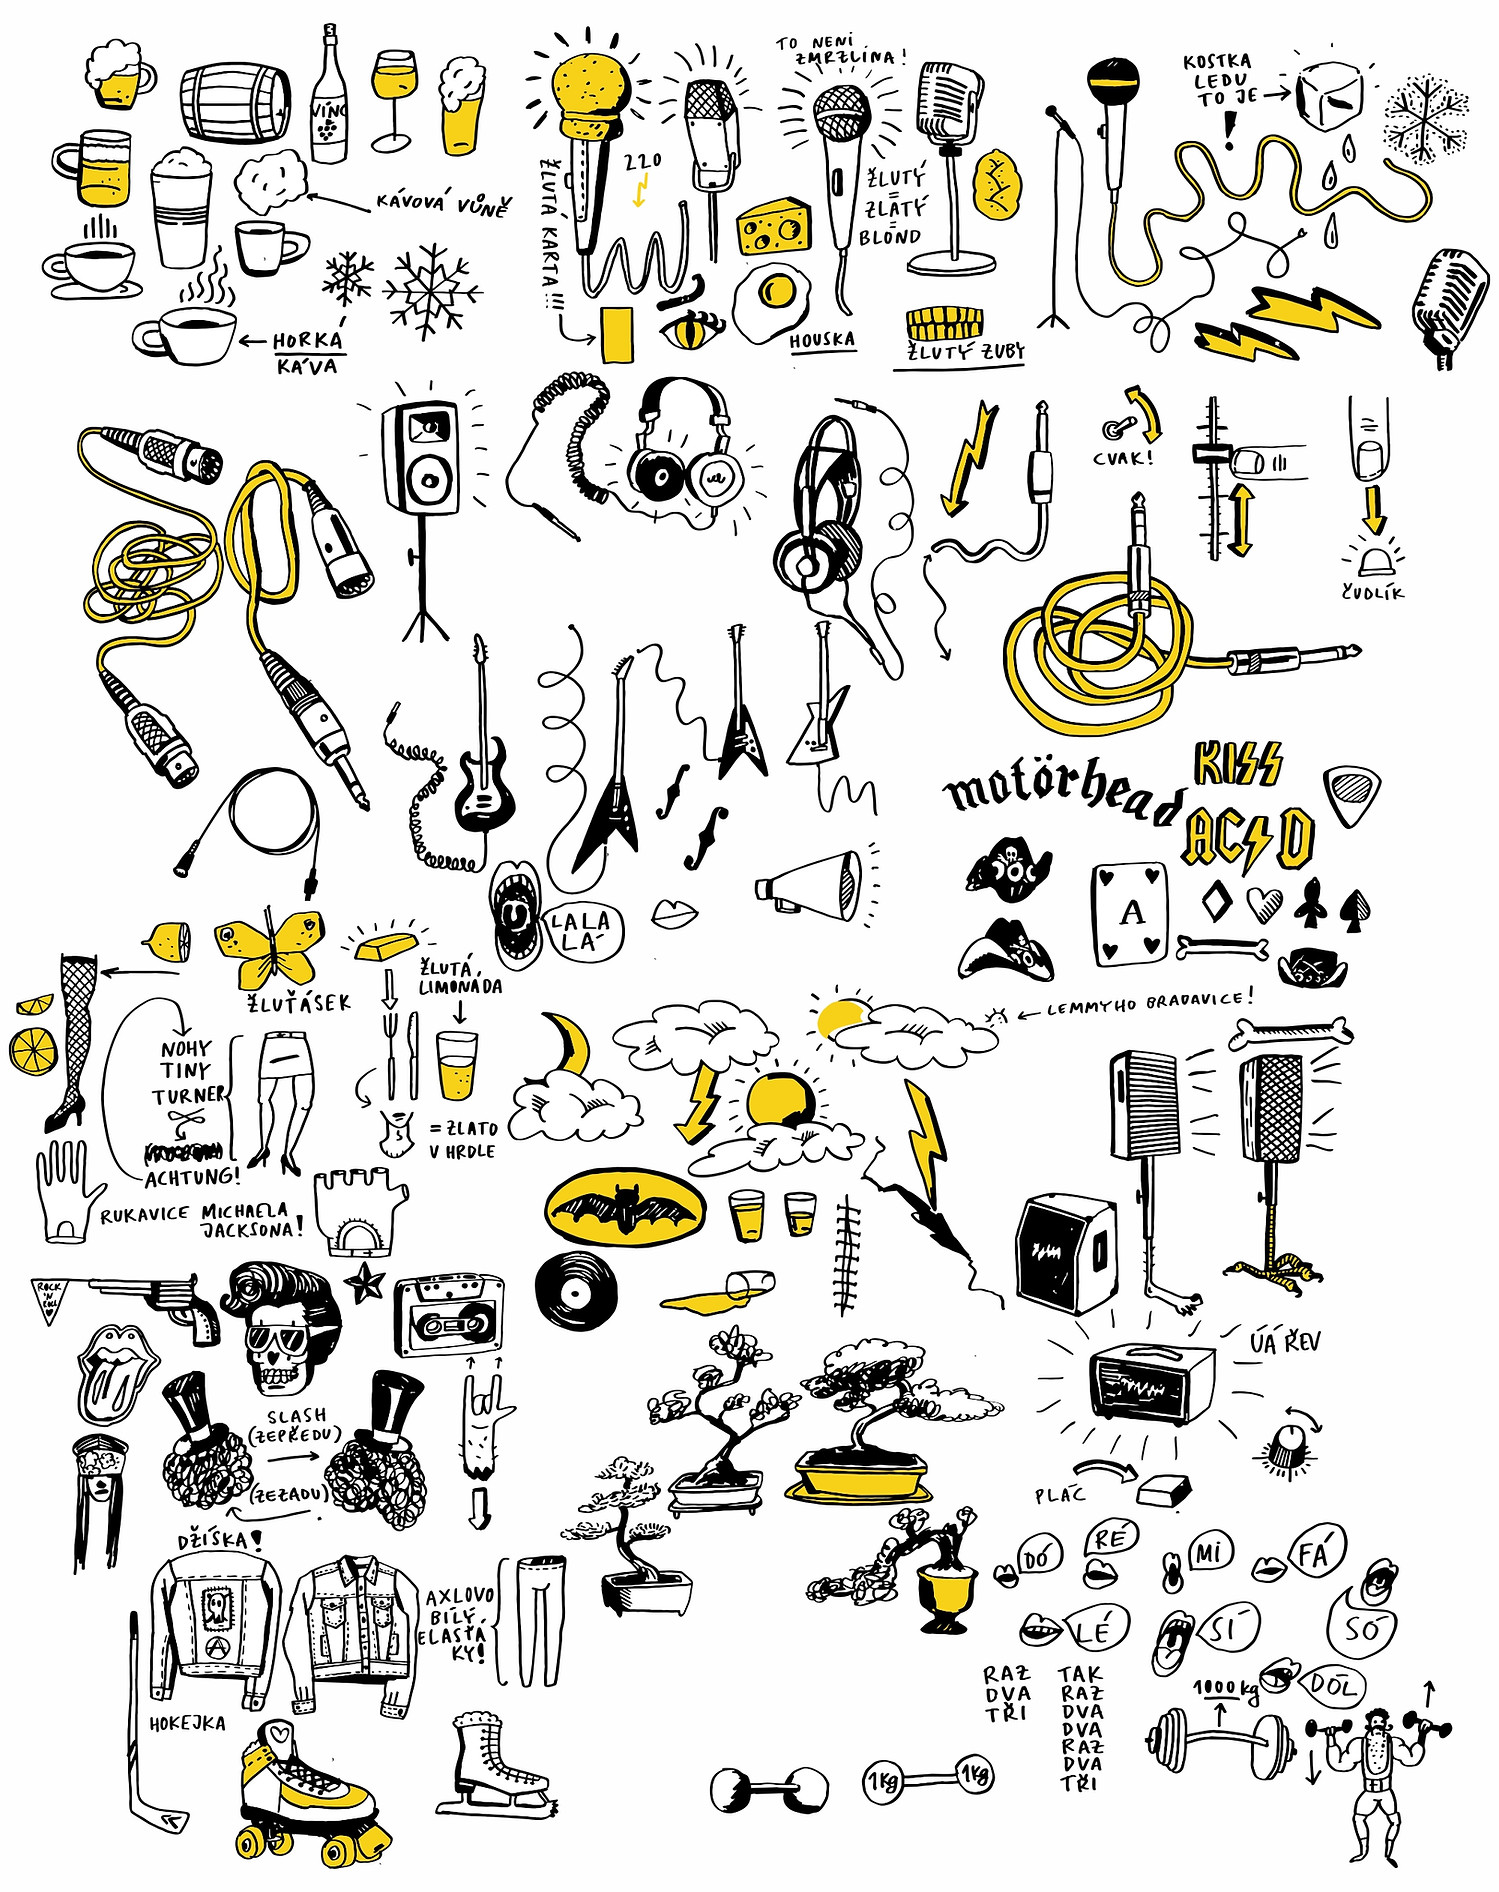 YELLOW.illustration_1.jpg